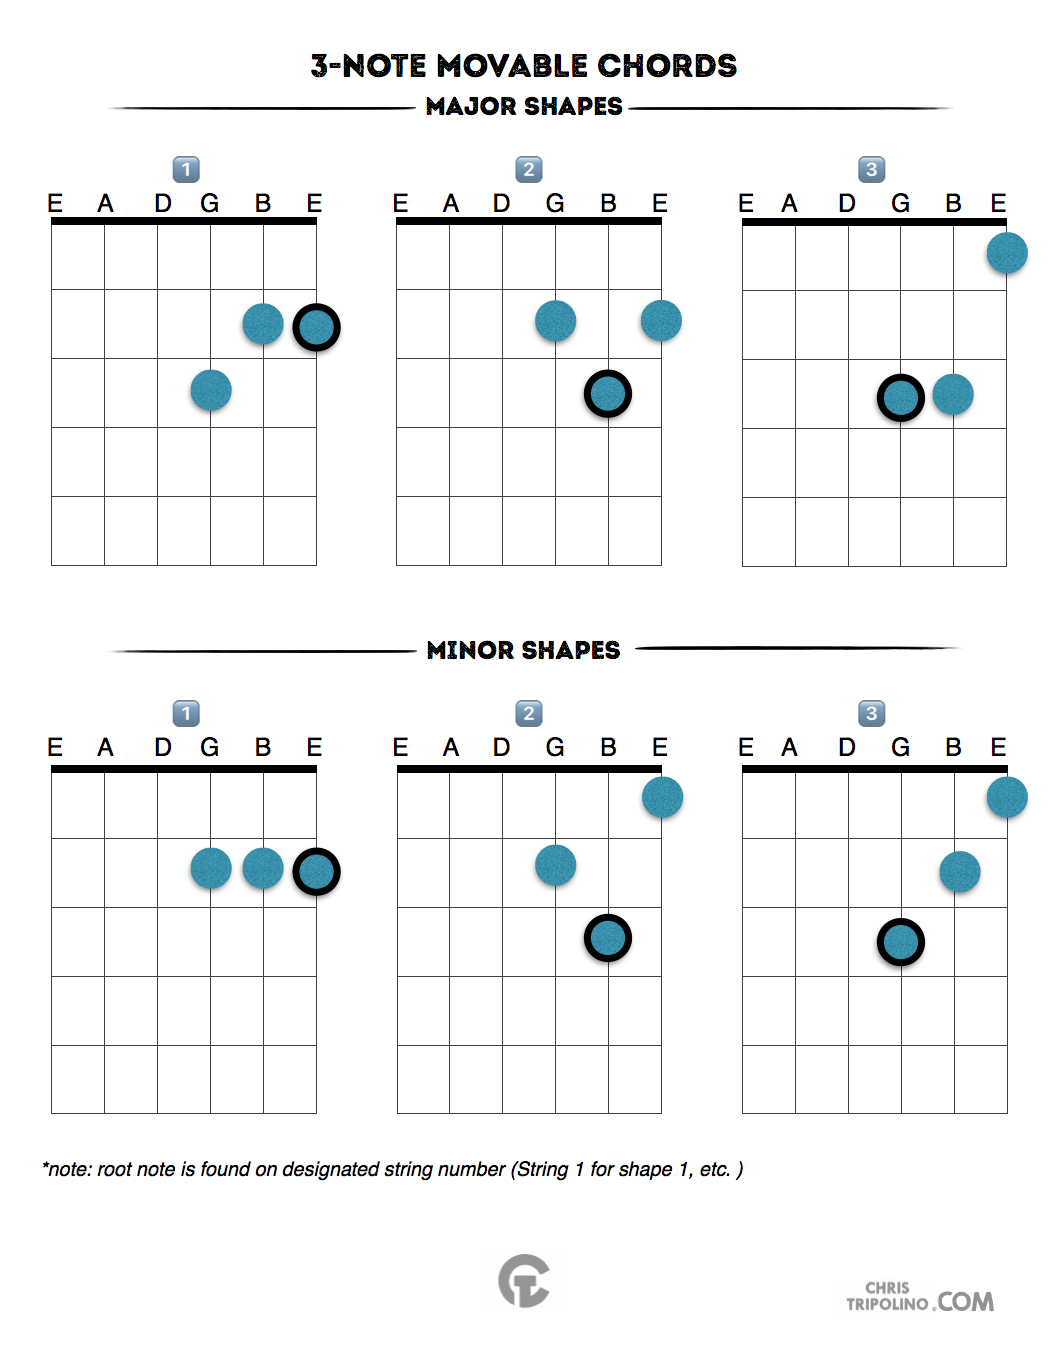 3 Note Chord Shapes Chris Tripolino